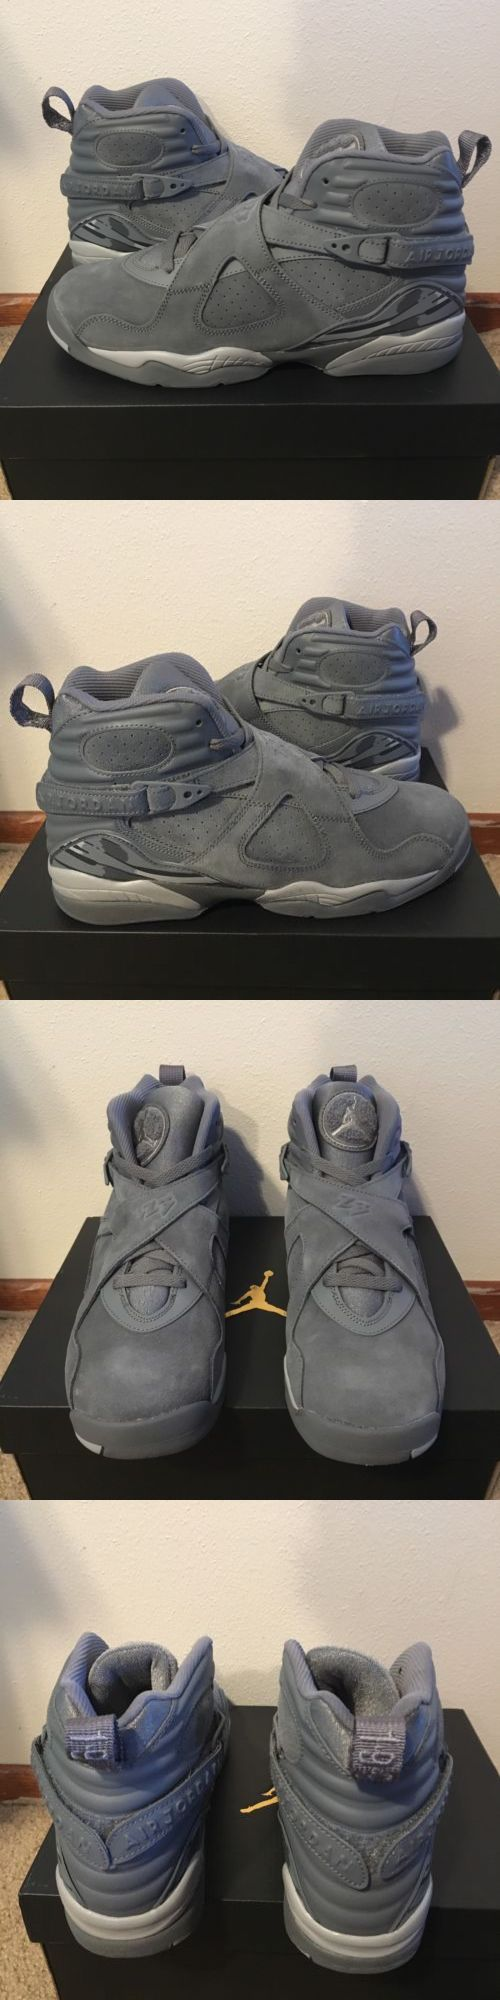 Boys Shoes 57929: Nike Air Jordan 8 Retro Bg Cool Wolf Grey Size 7Y Suede Ds New Authentic Youth -> BUY IT NOW ONLY: $130 on eBay!